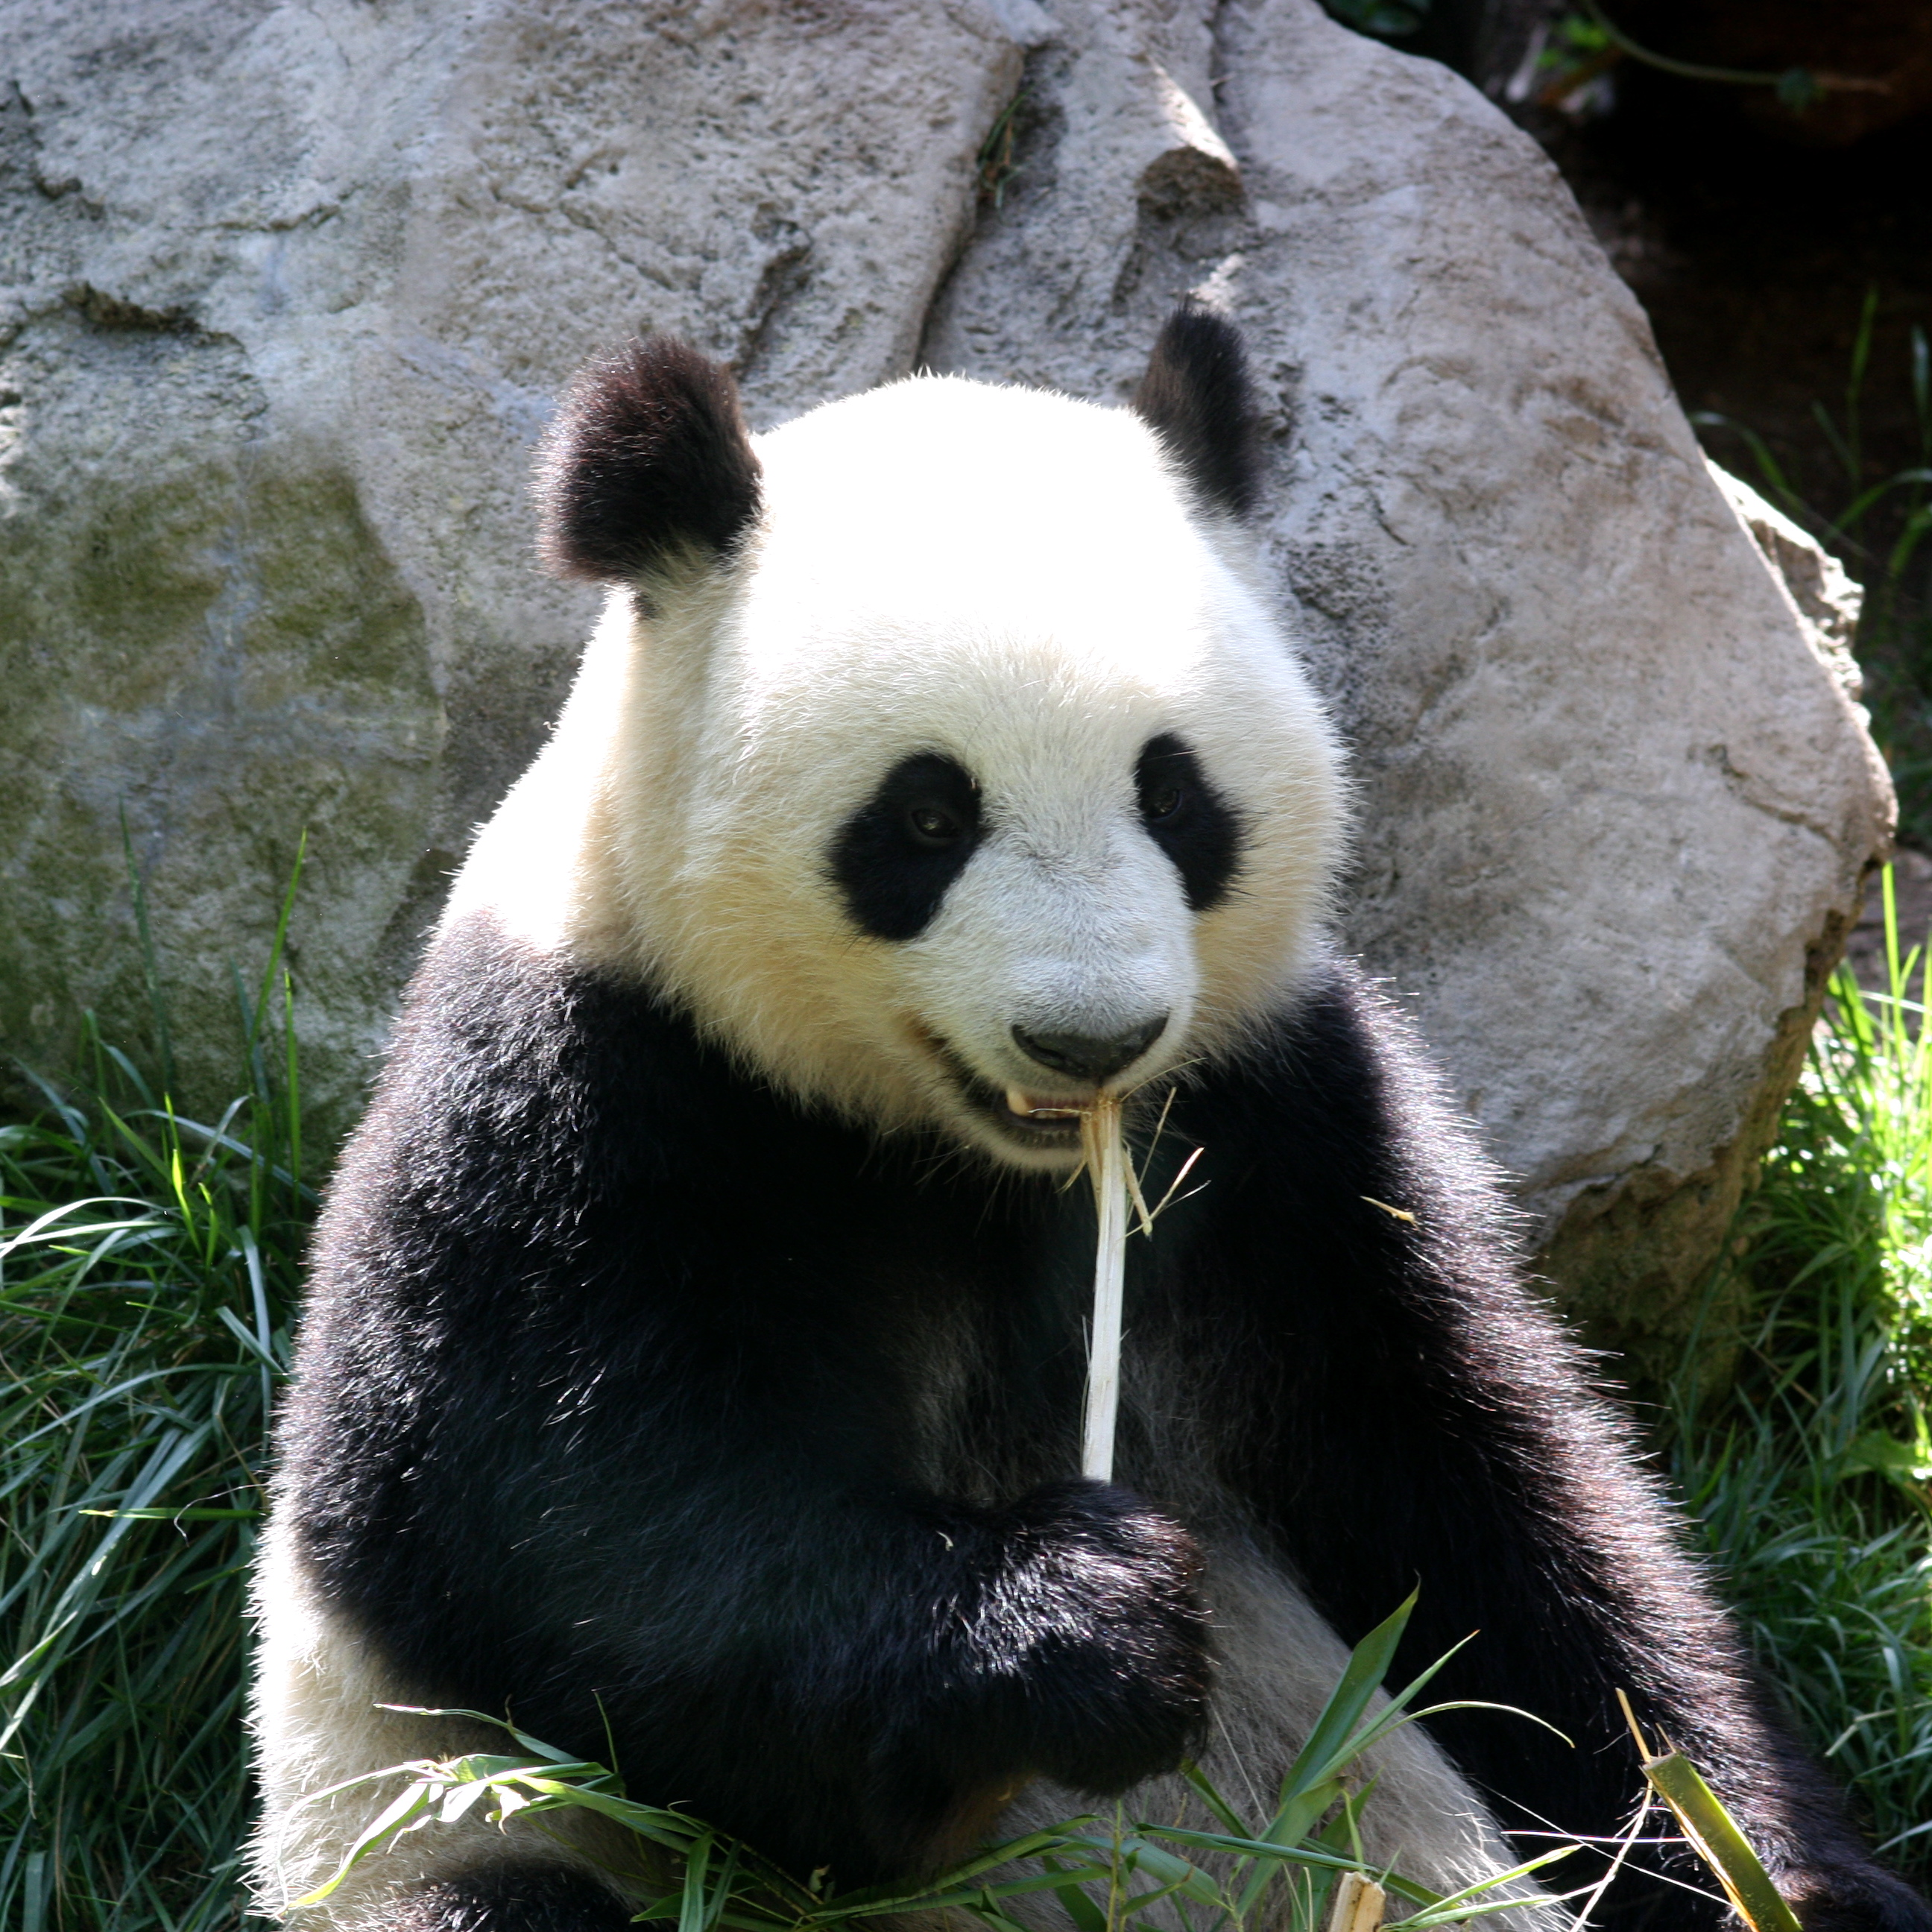 Giant Pandas And The Endangered Species List